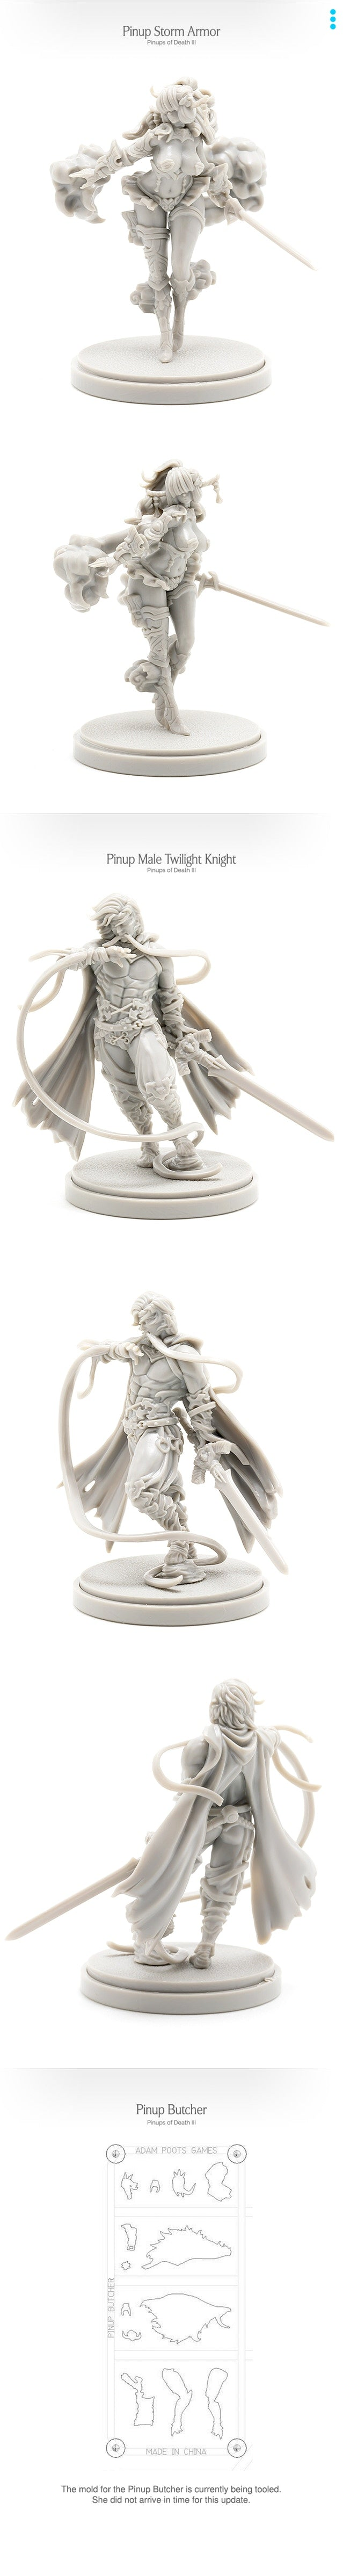 kingdom death monster kdm pinups of death iii pinups of death 3 kickstarter the game steward thegamesteward